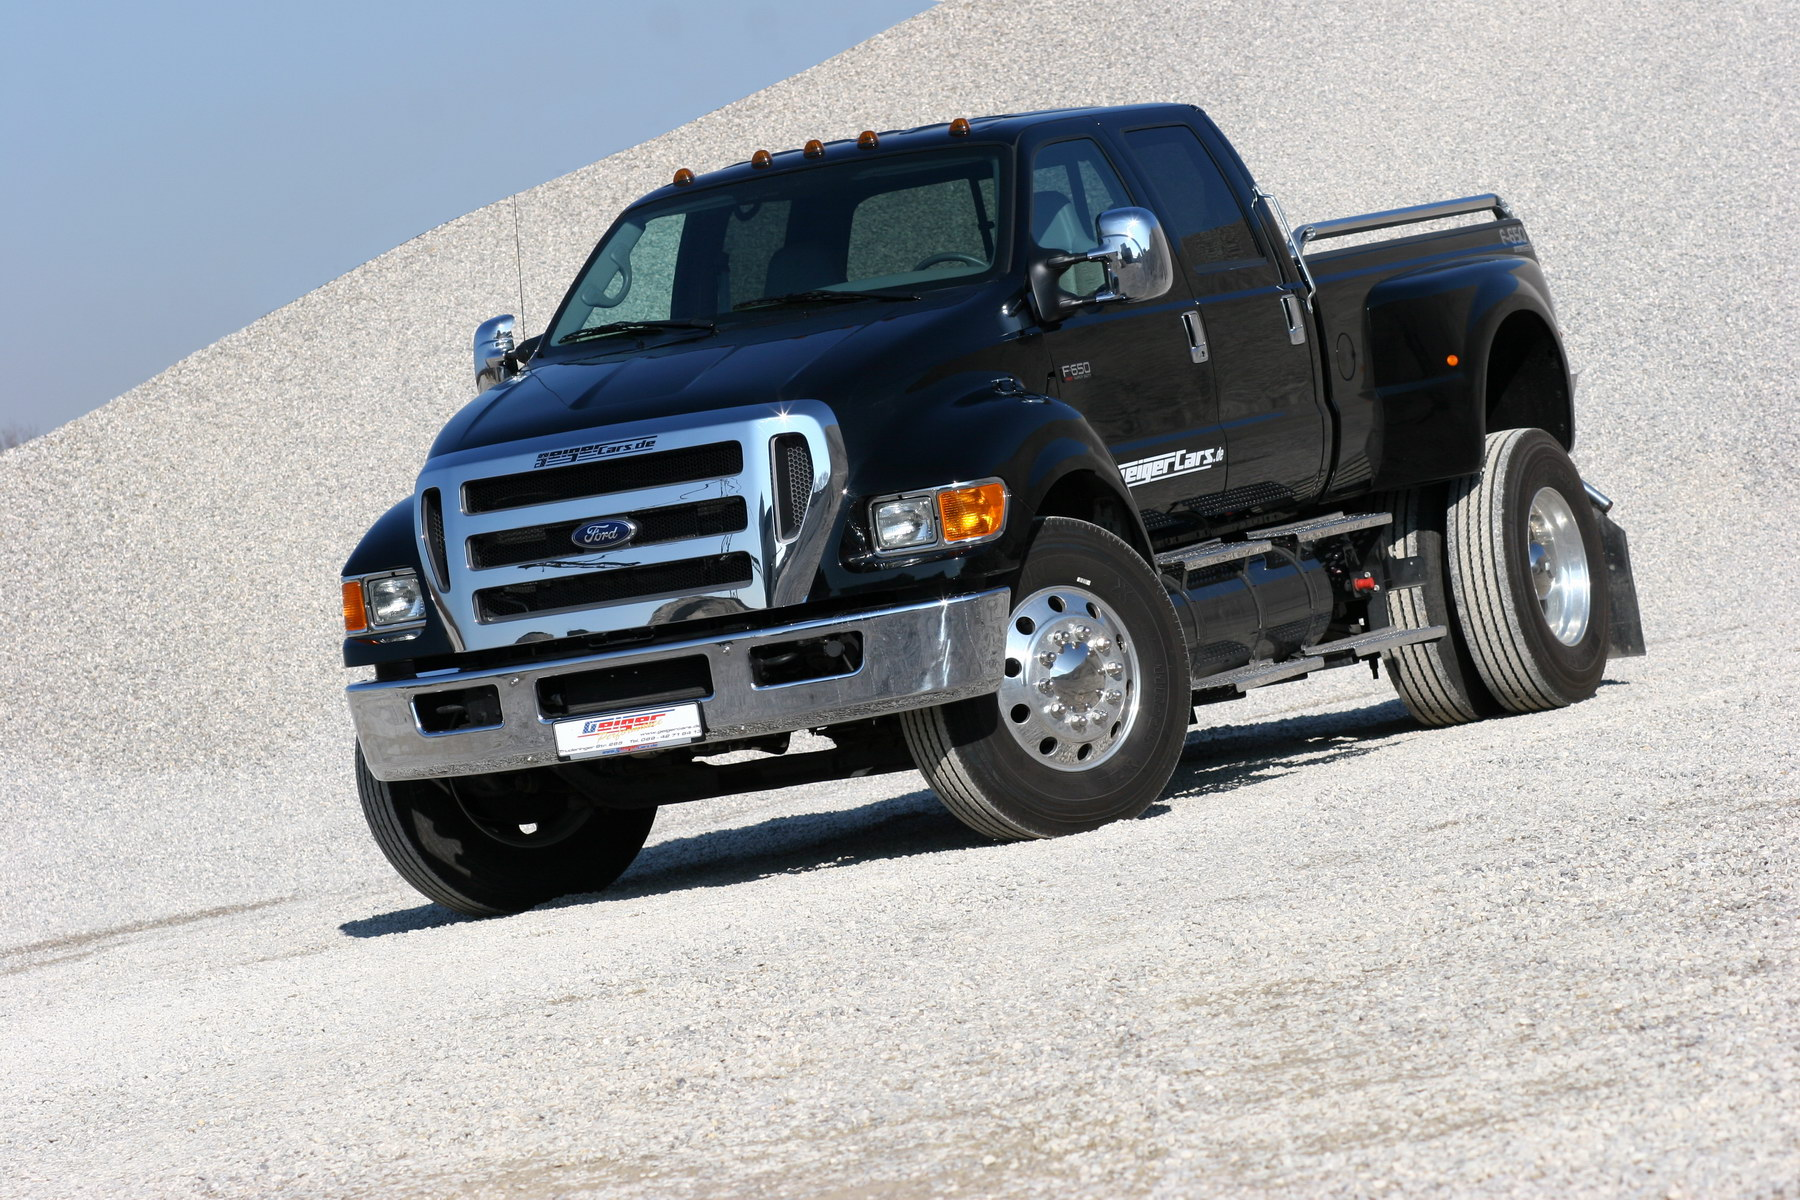 Ford f-750 photo - 4